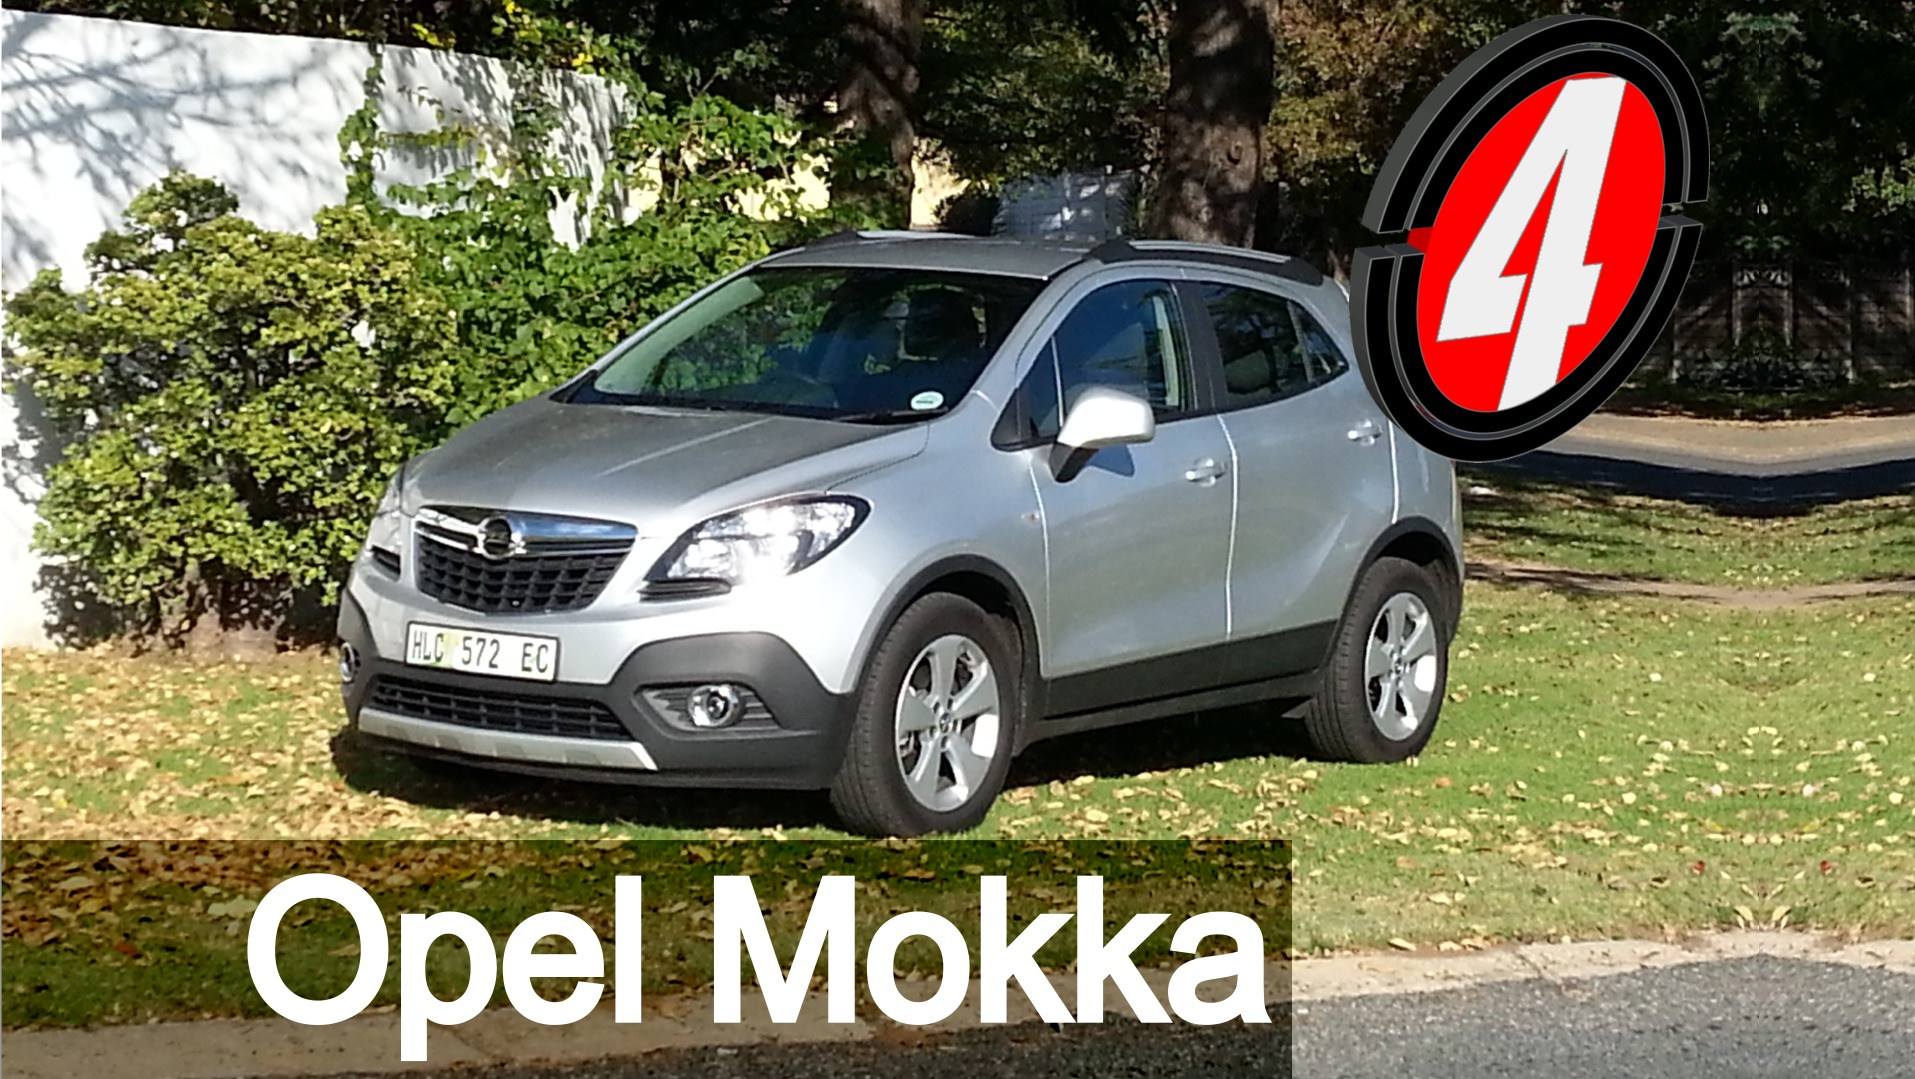 opel s new suv looks really mokka new car review. Black Bedroom Furniture Sets. Home Design Ideas